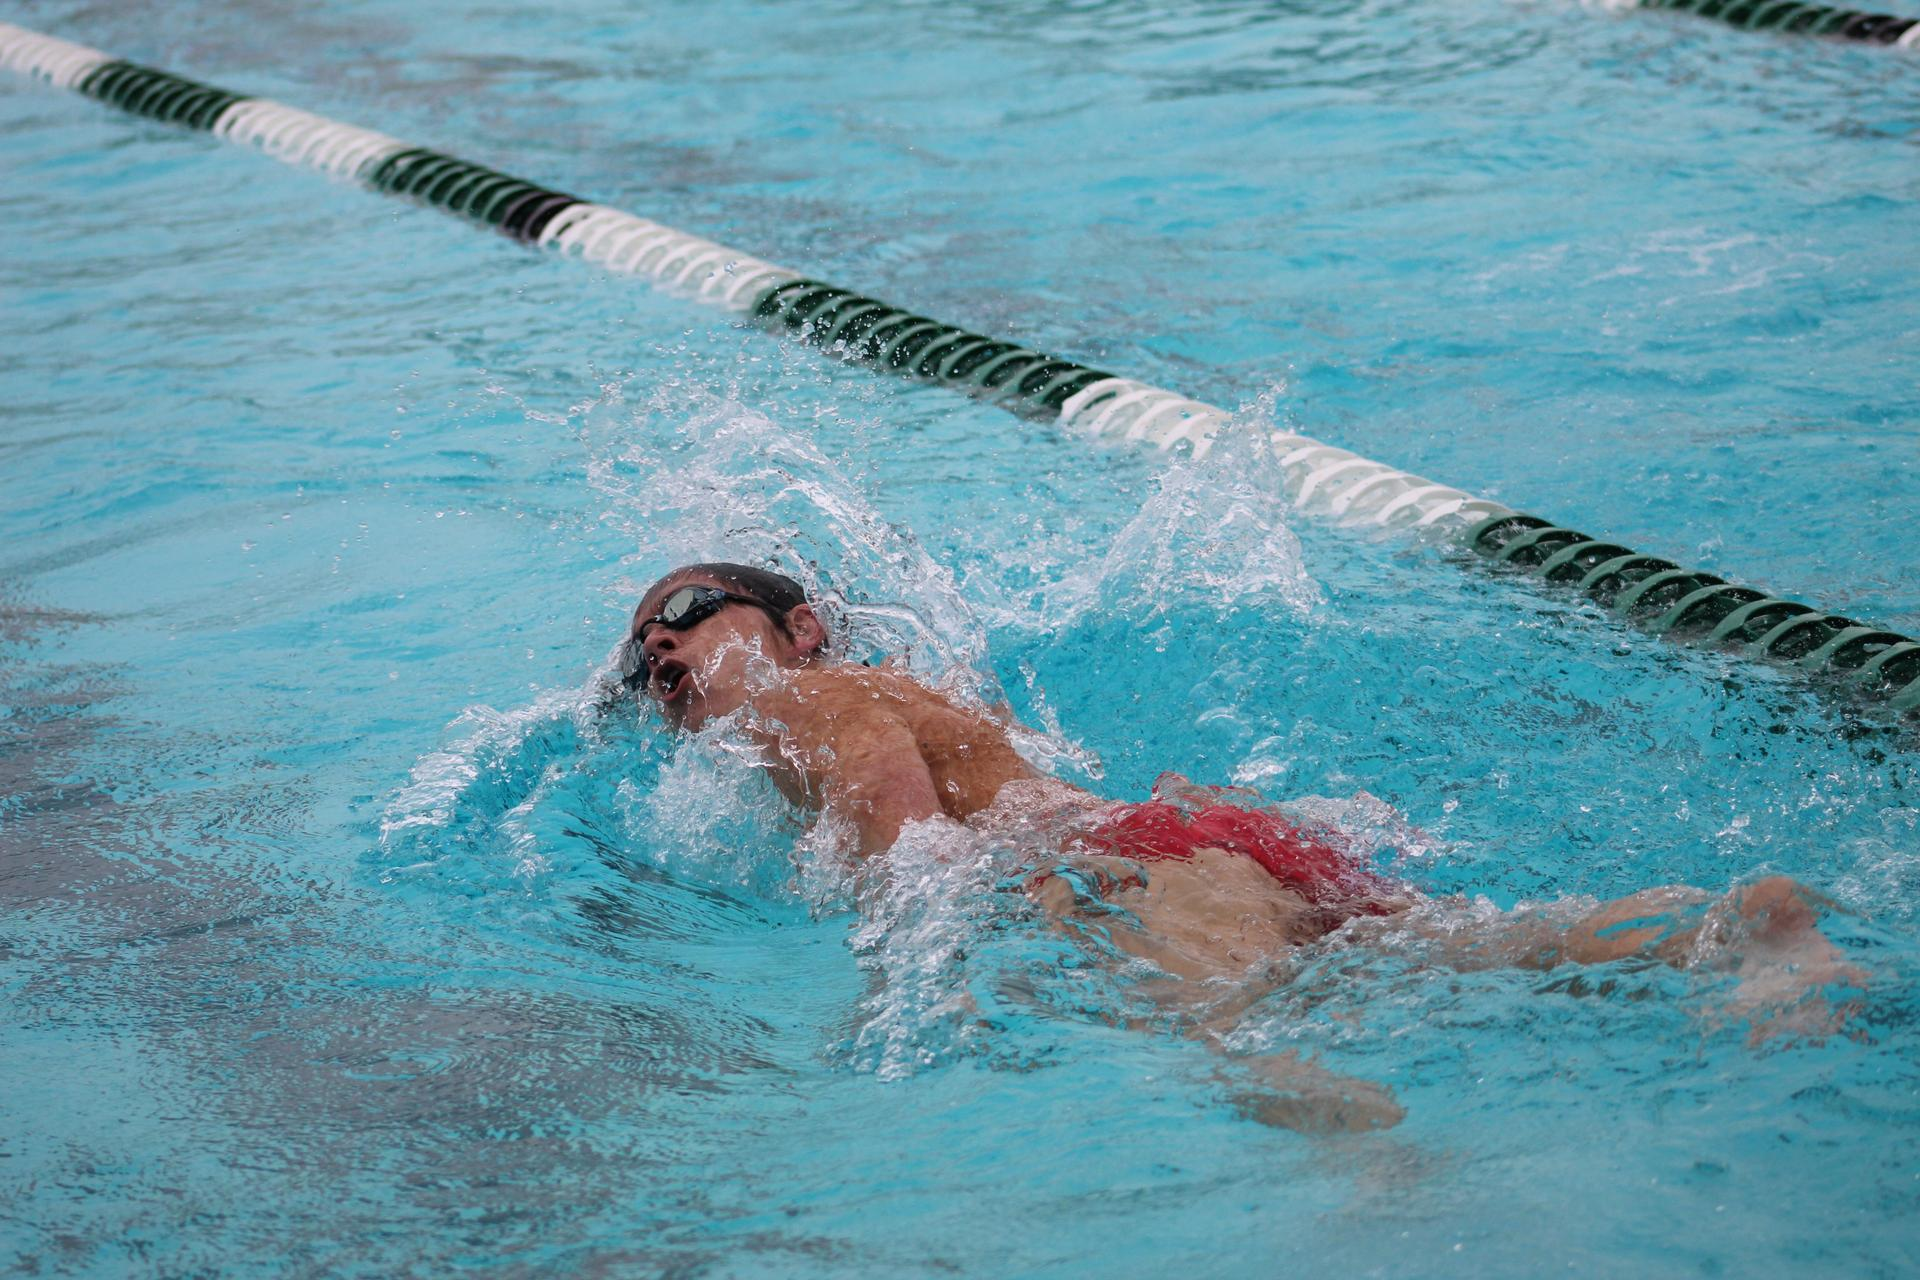 Chowchilla High swimmers in action at Hoover high